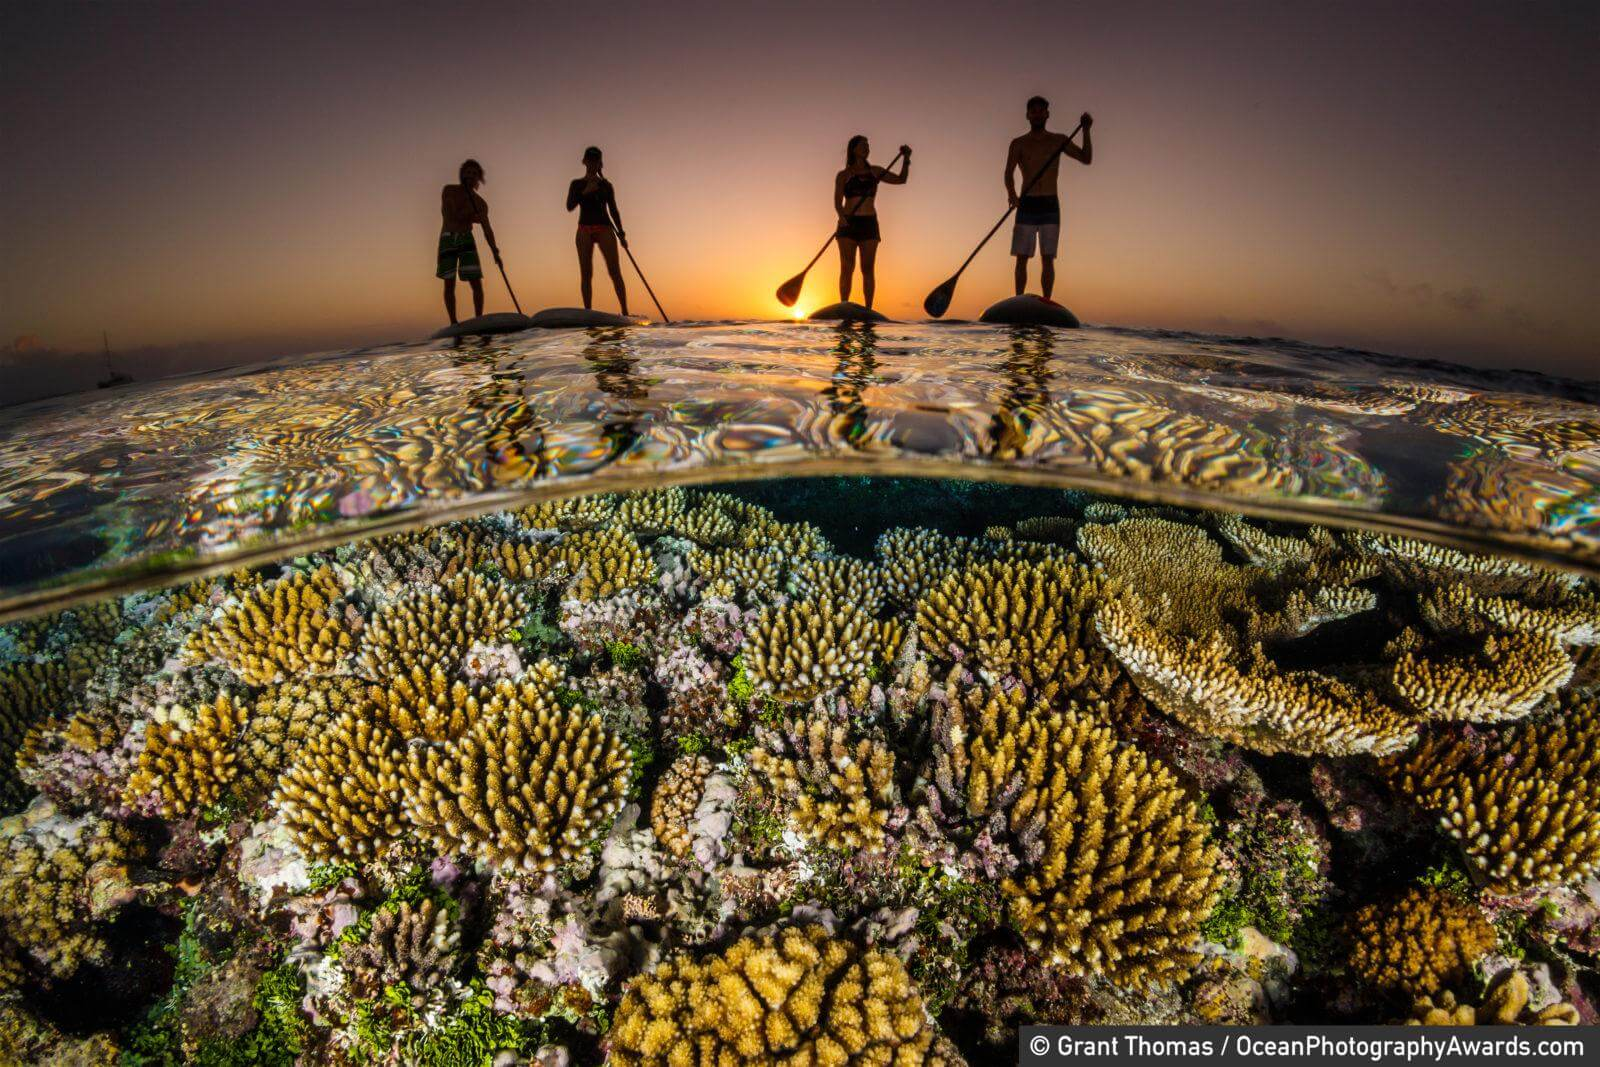 """Paddle boarders float above a reef at sunset. """"This image is one of a series of images aimed at demonstrating the innate bond humans have with the ocean, whether we are physically in it or just floating on the surface,"""" says photographer Grant Thomas"""